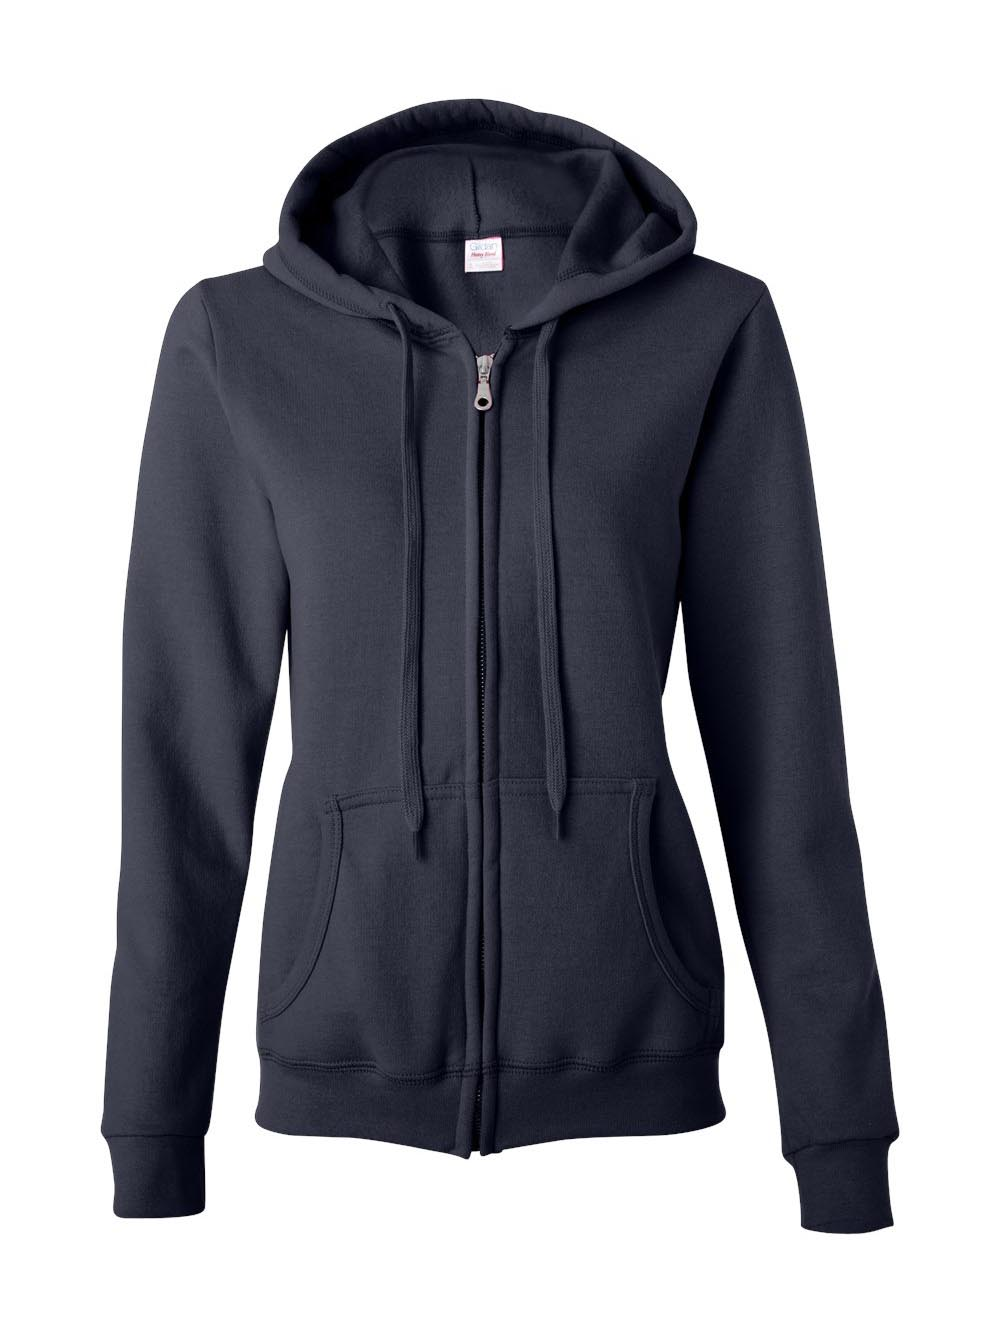 Gildan - Heavy Blend Women's Full-Zip Hooded Sweatshirt - 18600FL